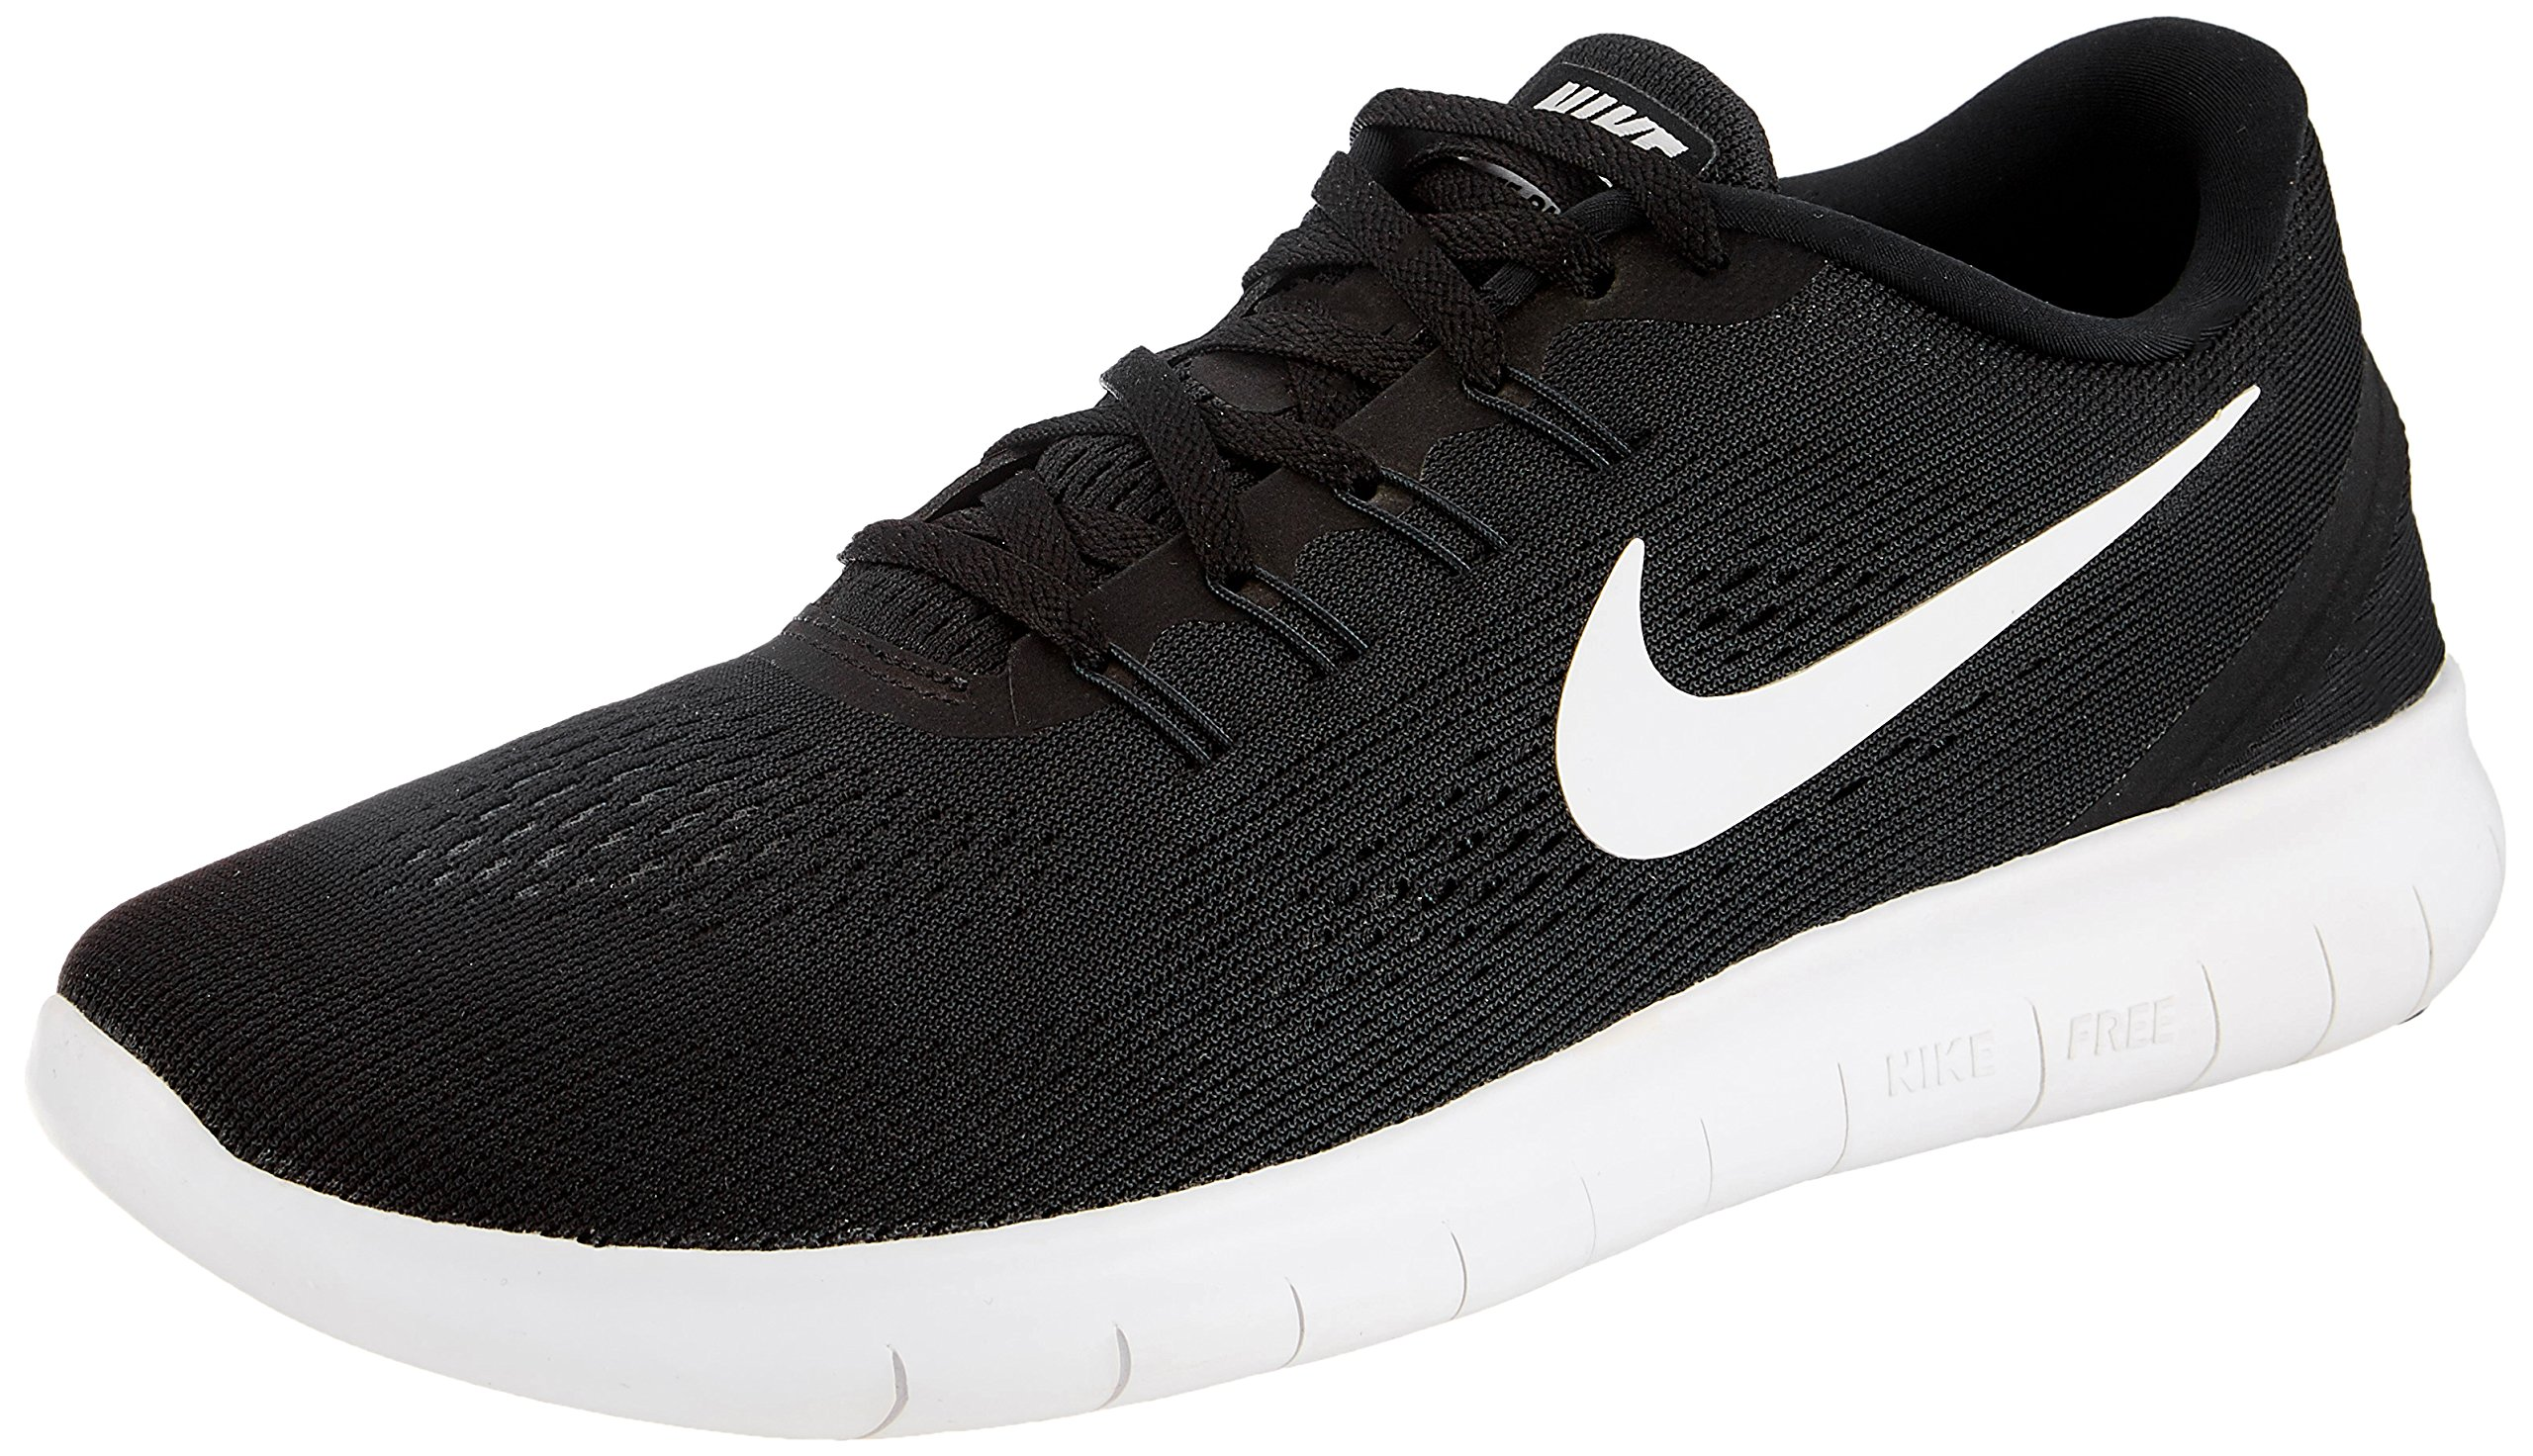 NIKE Men's Free RN Running Shoe Black/Anthracite/White Size 13 M US by NIKE